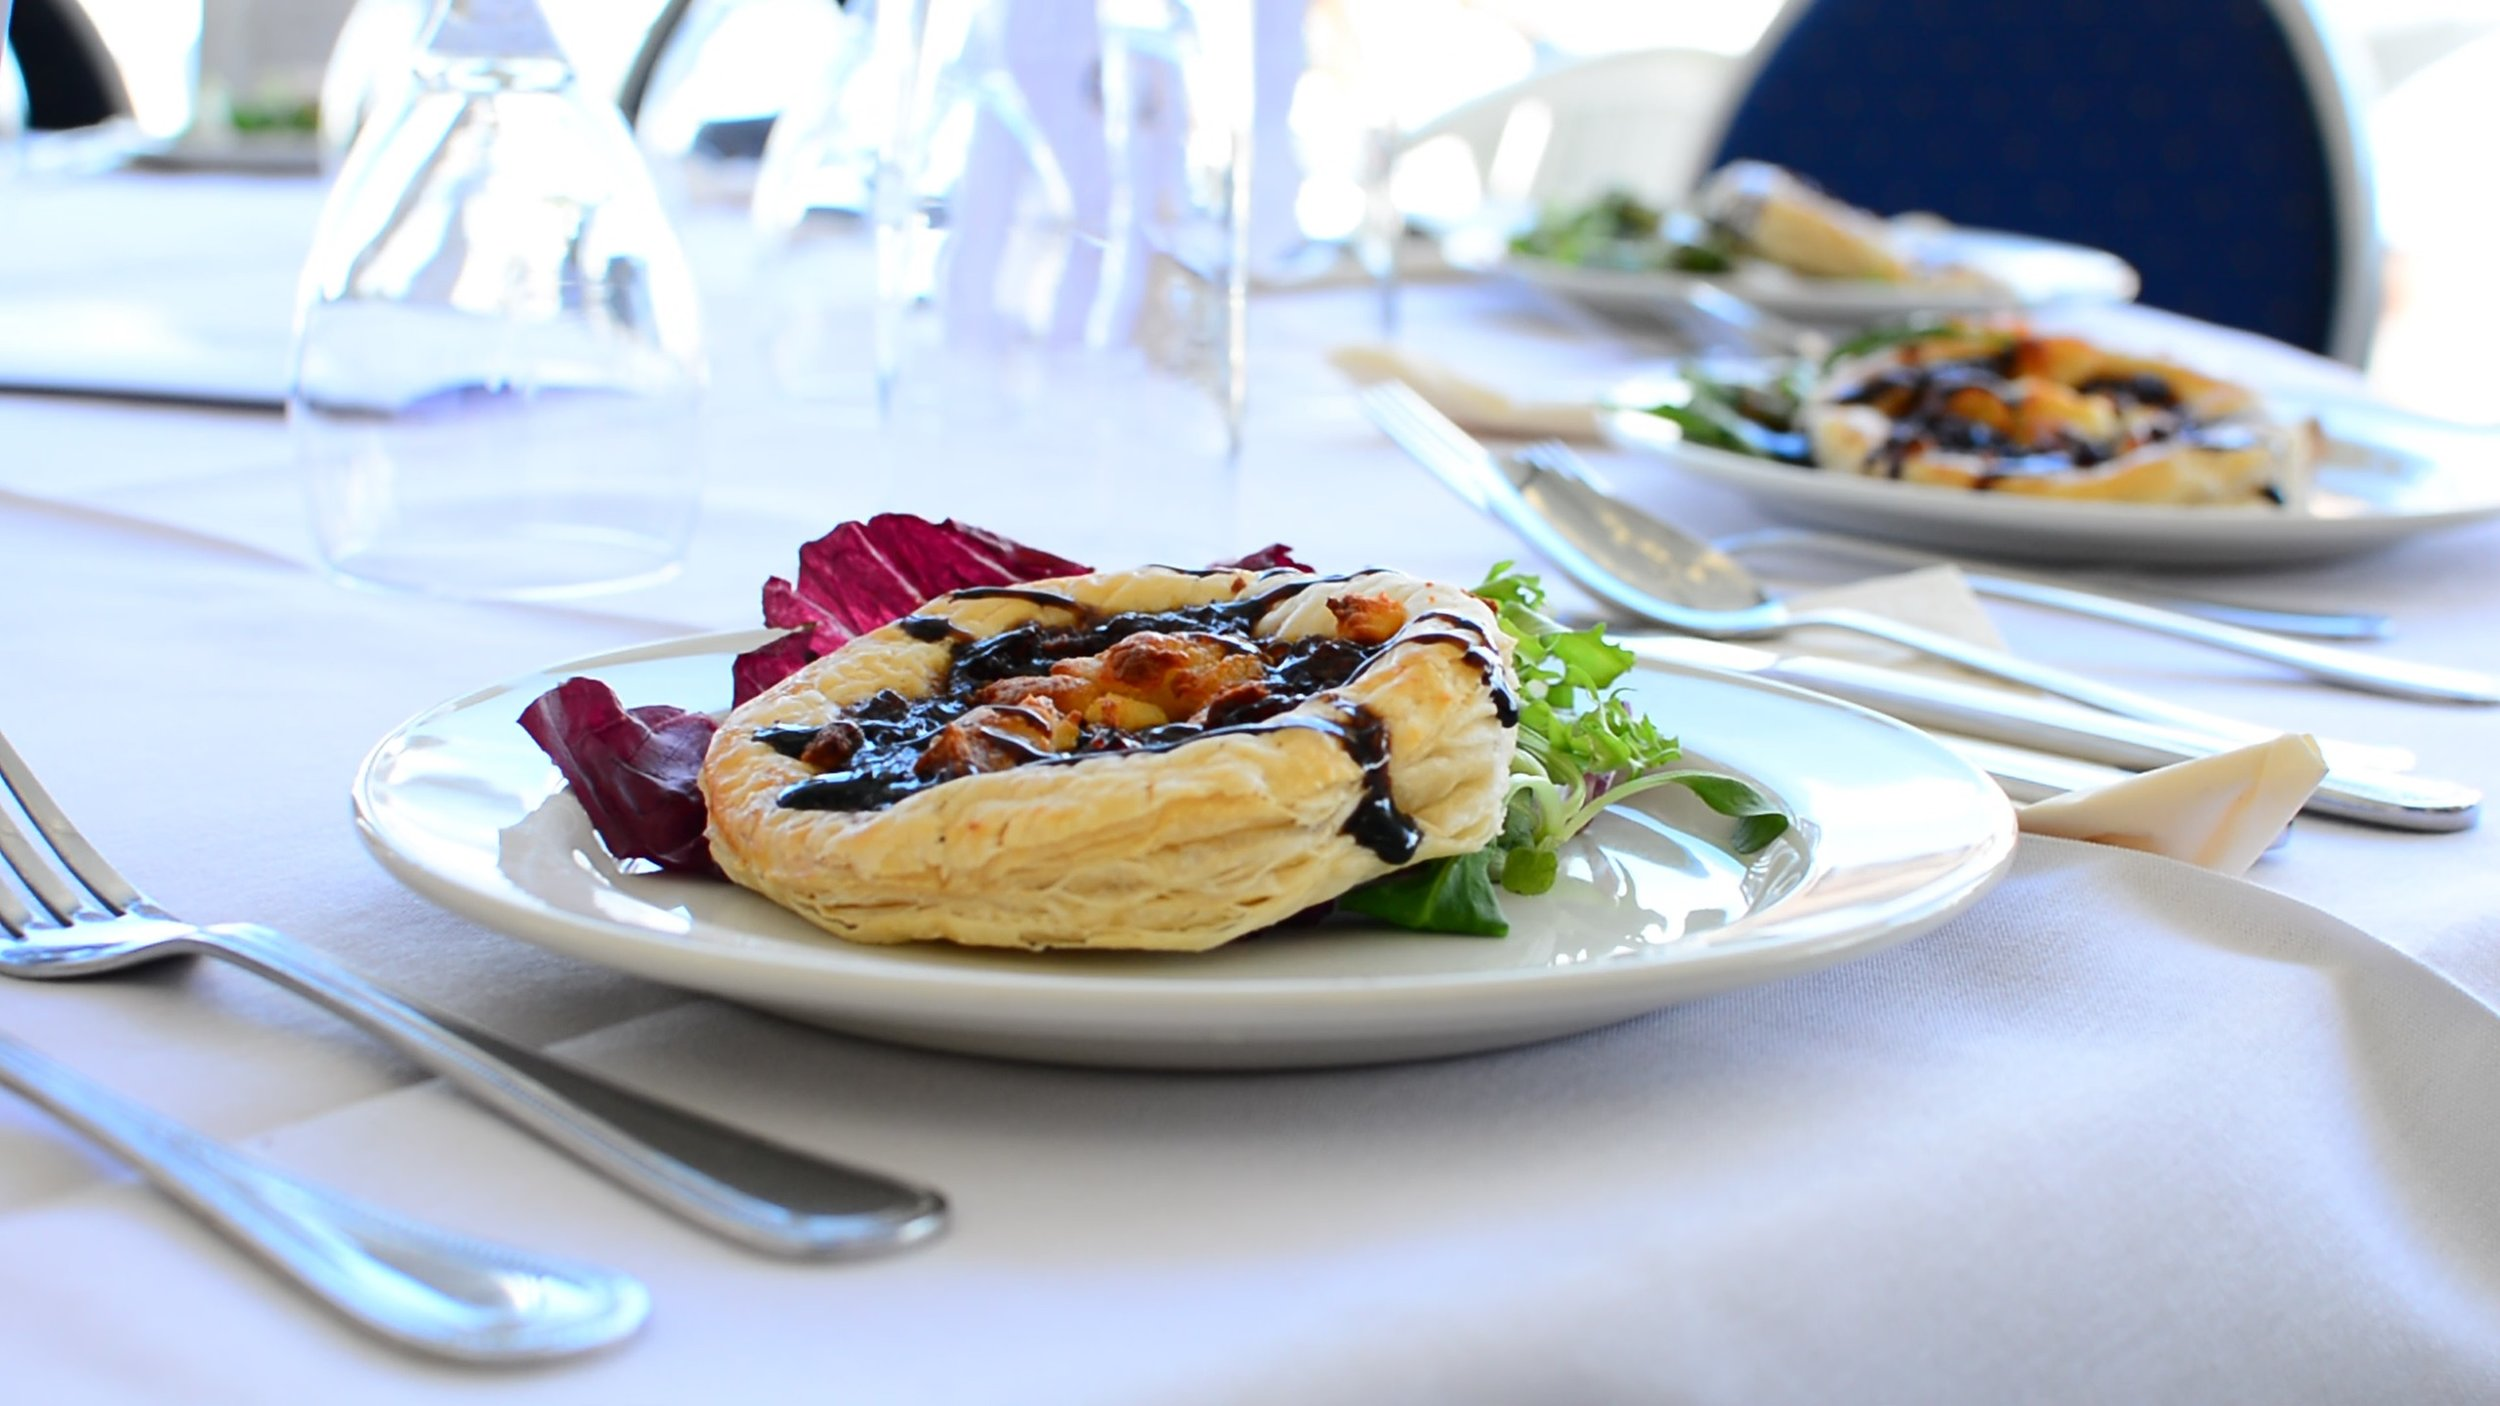 EXQUISITE HANDMADE FOOD   From canapés to three-course luncheons